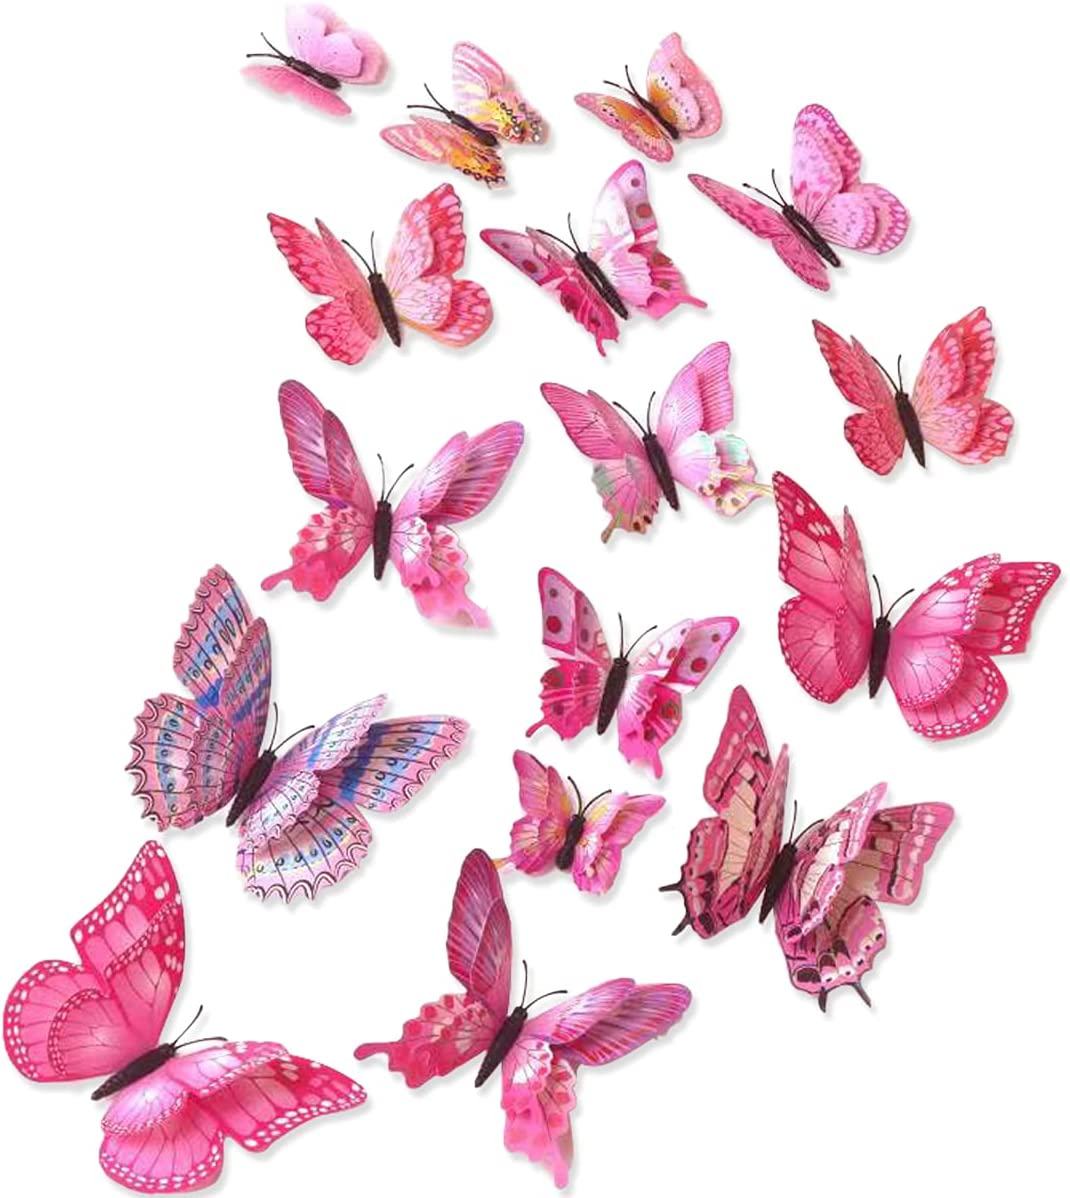 24PCS Butterfly Wall Decals Stickers Jacksonville Challenge the lowest price of Japan Mall Remova 3D Butterflies